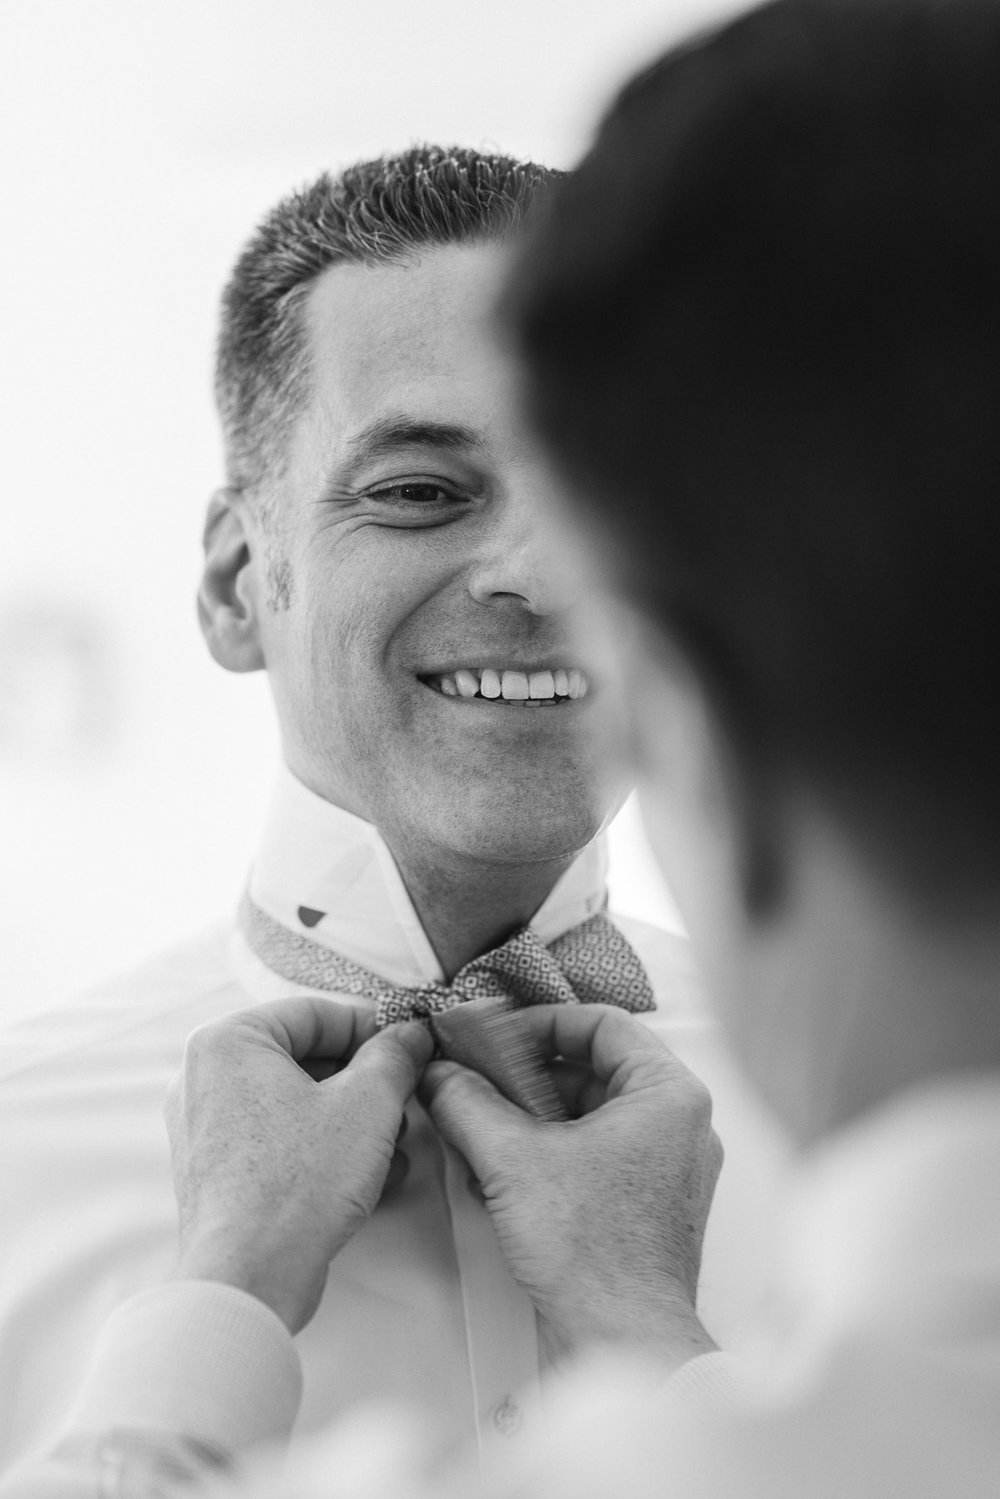 Groom having bowtie tied before his wedding. 